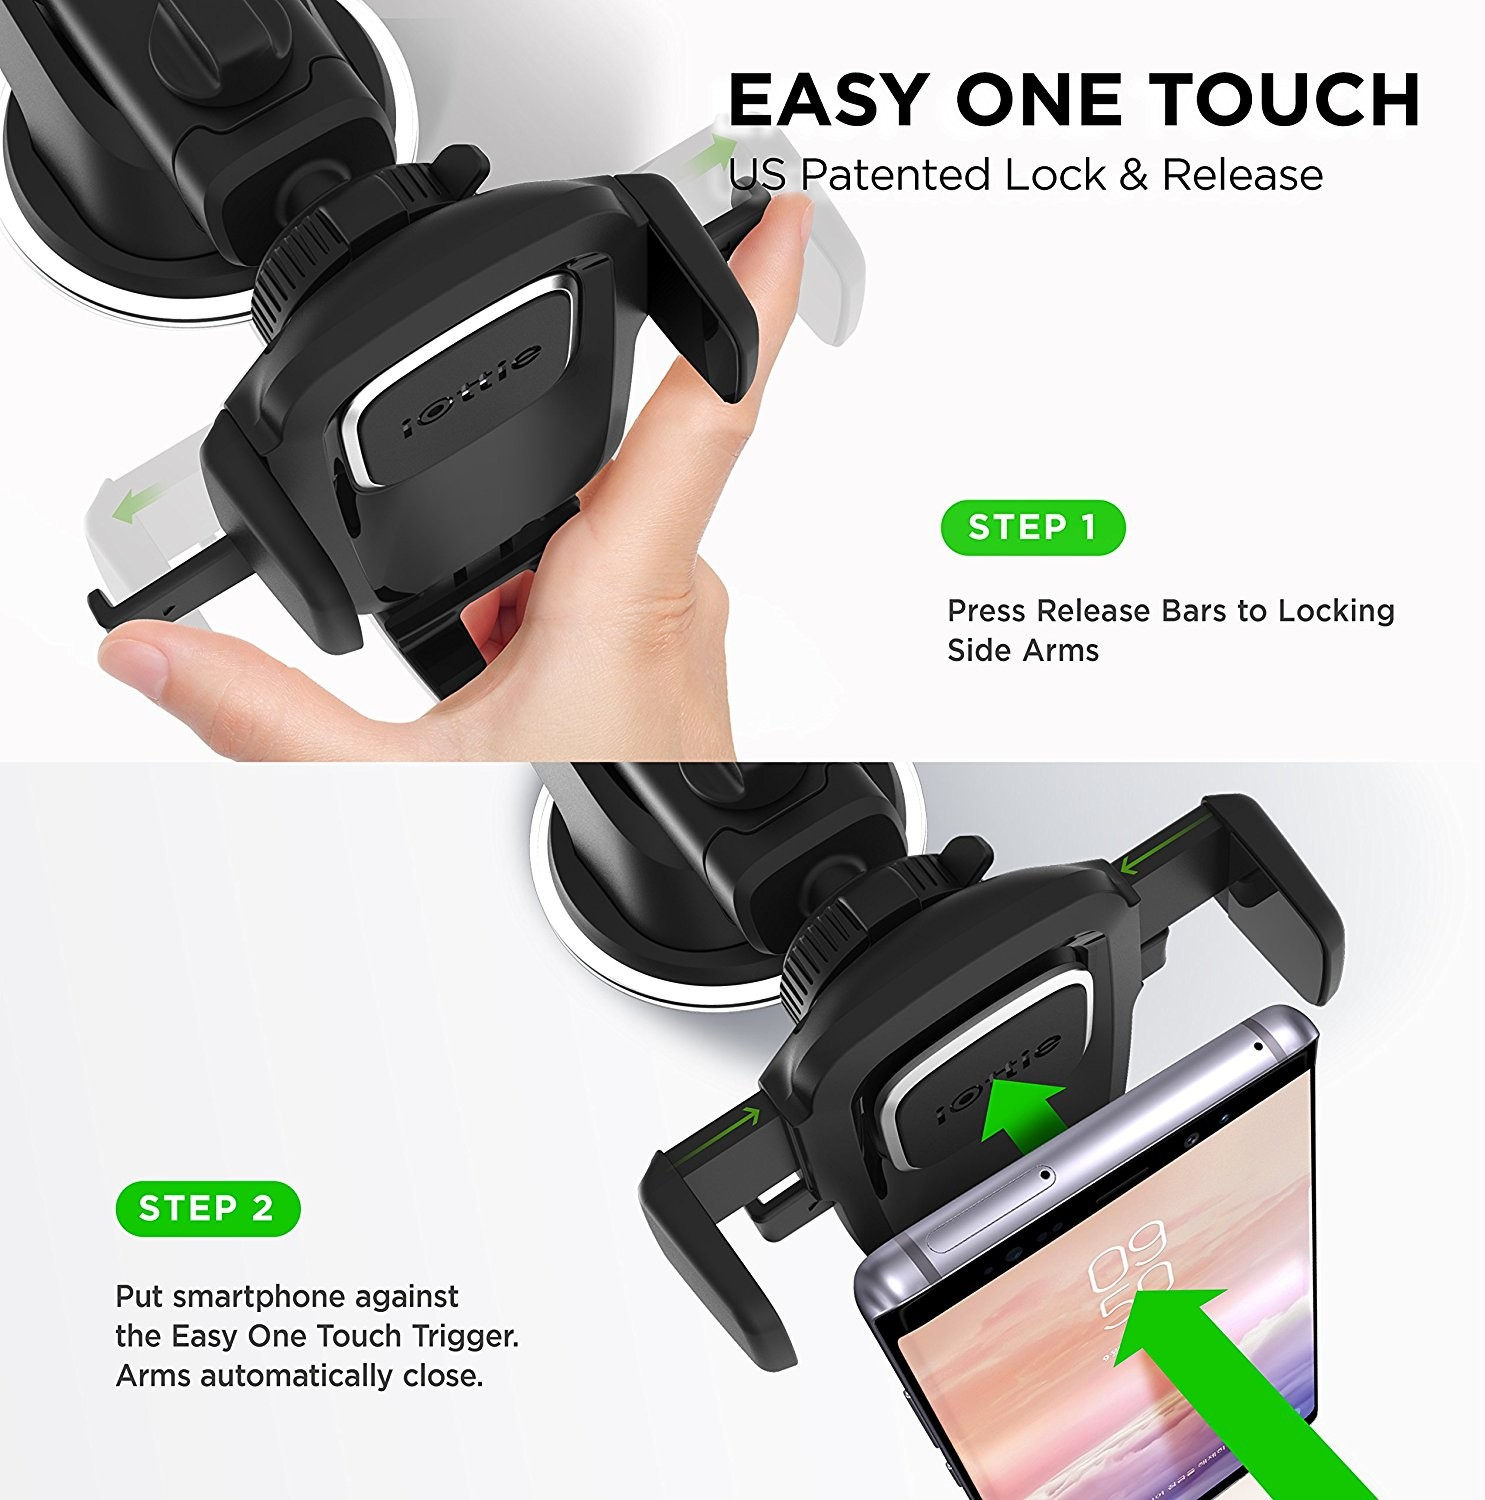 iOttie Easy One Touch 4 Car & Desk Mount Phone Holder - Compatible with all iPhone Models, HLCRIO125